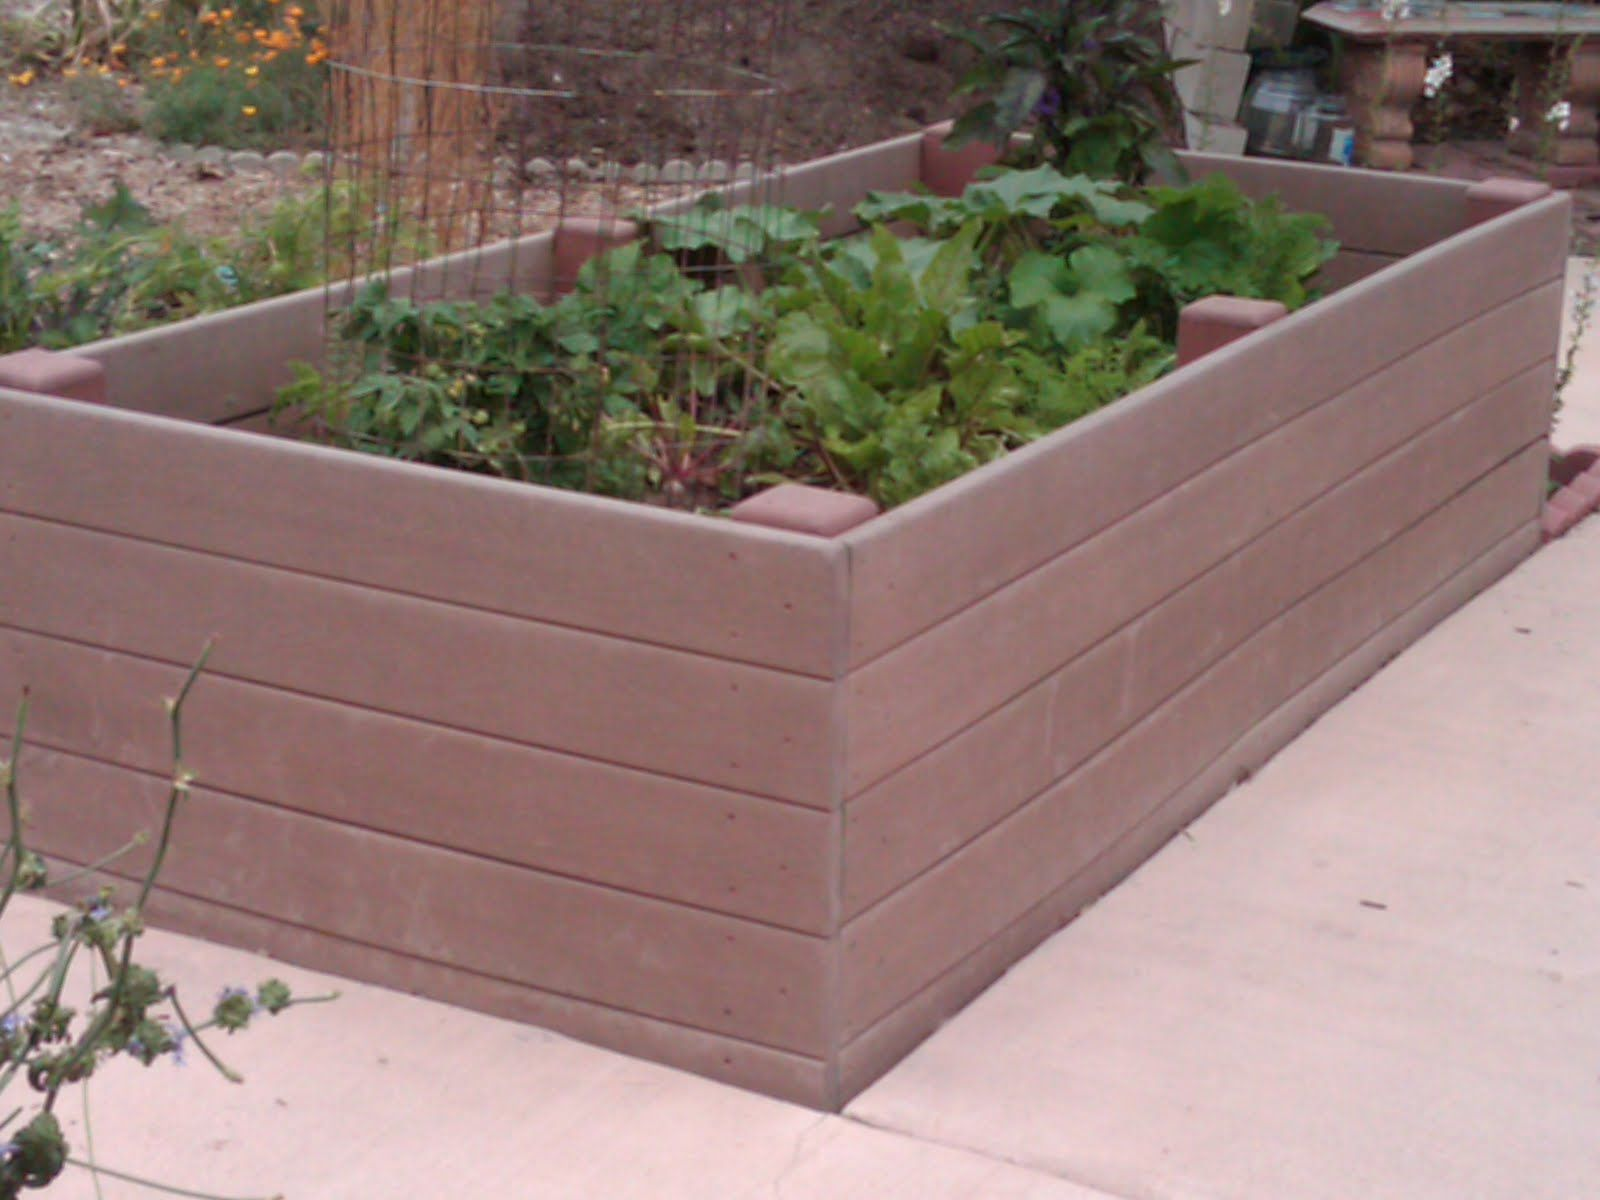 I Love Raised Flower Beds But D Never Thought Of Using